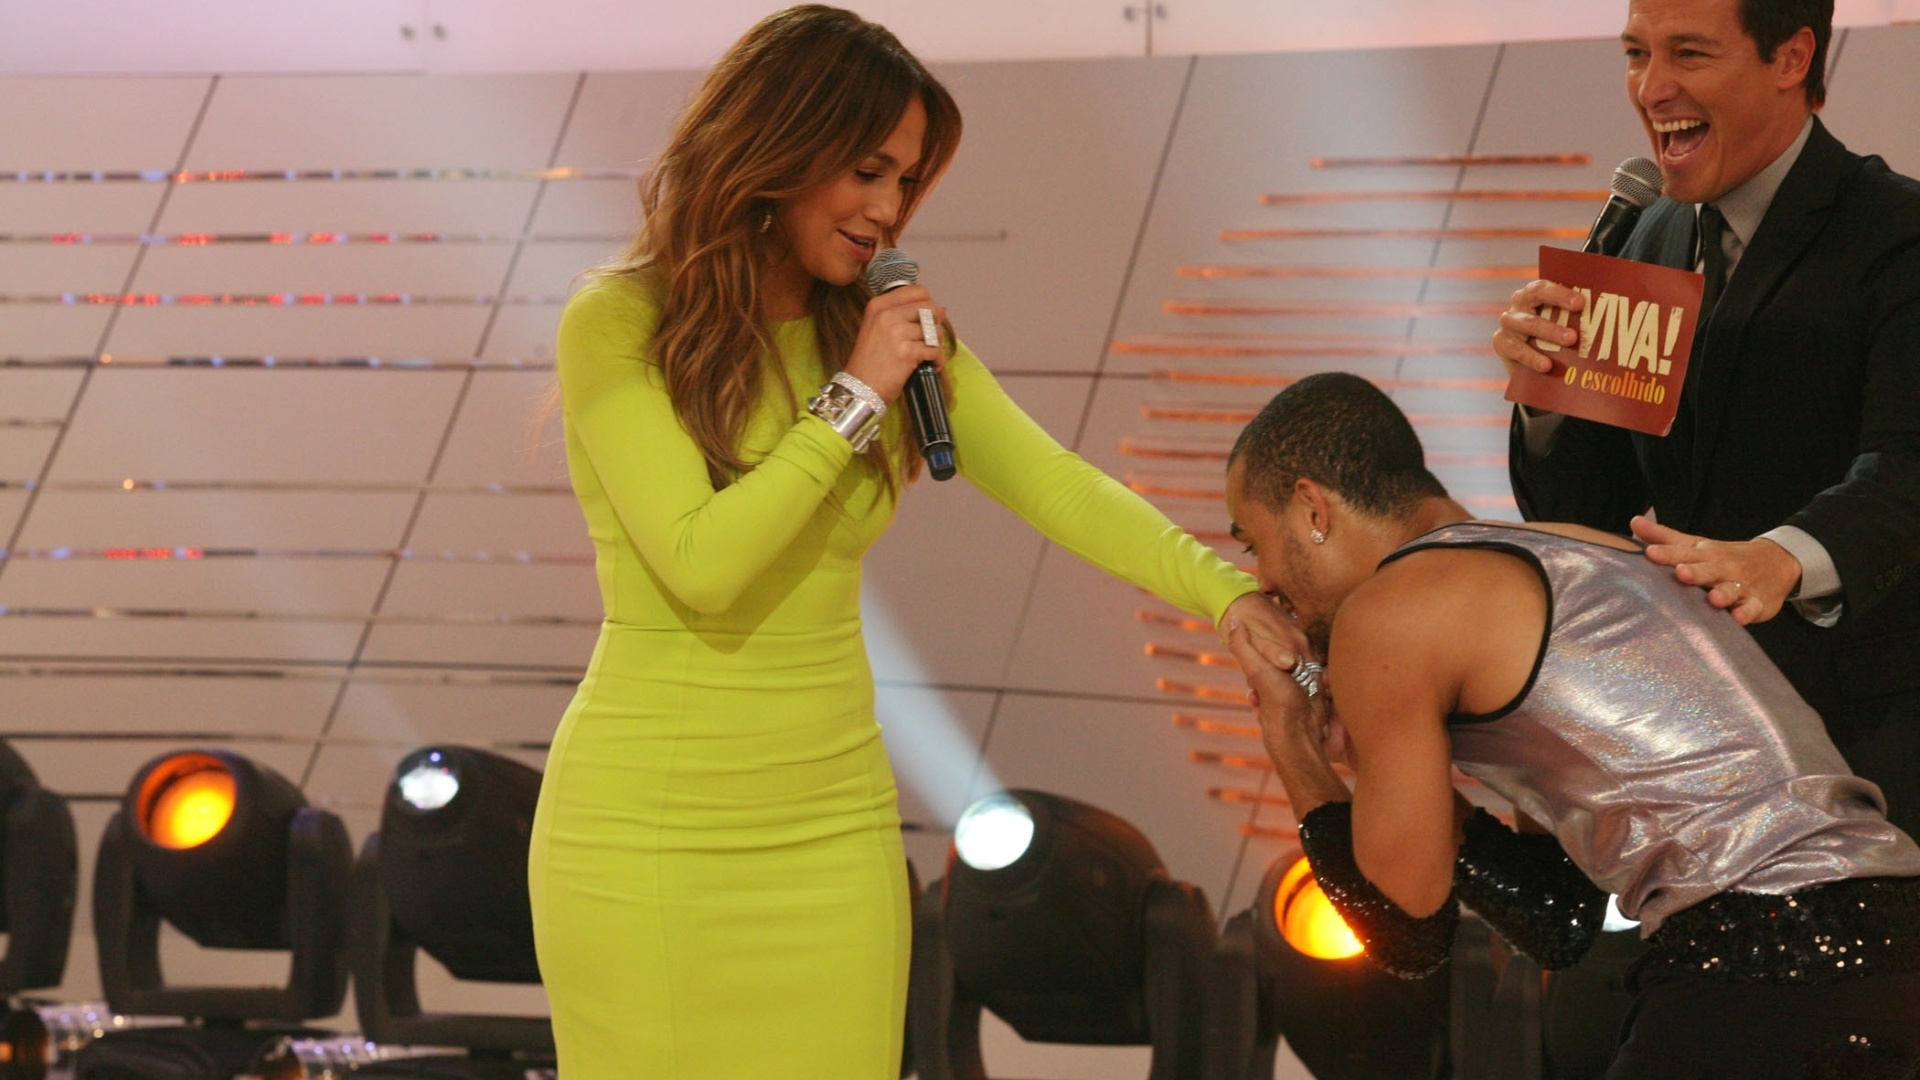 Um f beija a mo de Jennifer Lopez durante a gravao do programa 